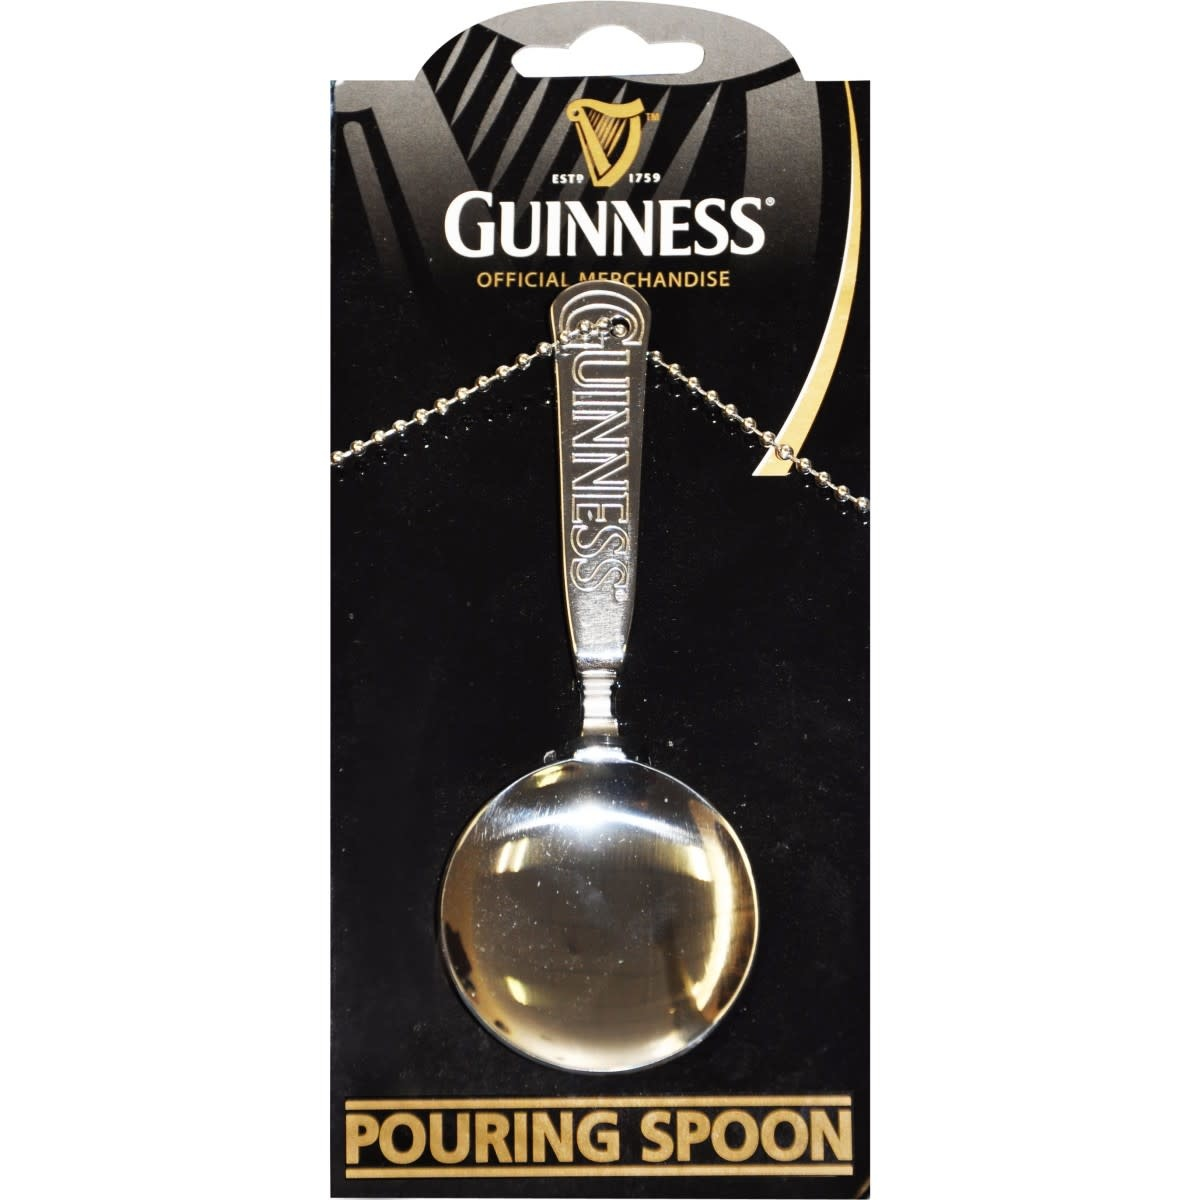 Guinness Guinness: Pouring Spoon